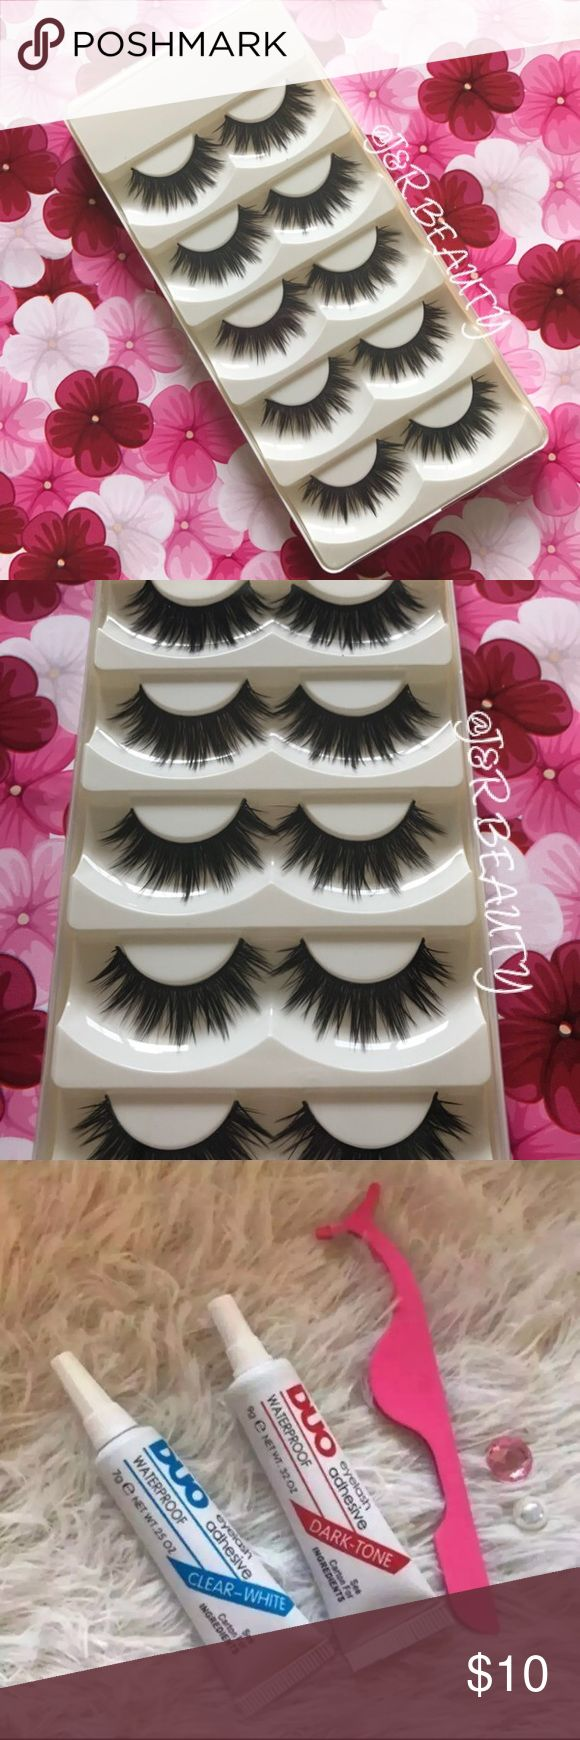 ICONIC Eyelashes 5 Pairs +$2 Add on eyelash Applicator  +$3 Add on eyelash glue Please message me if you want to add them.   ✅ Bundle &  Save  # tags Iconic, mink, red cherry eyelashes, house of lashes, doll, kawaii, case, full, natural,  Koko, Ardell, wispies, Demi , makeup, Iconic, mink, red cherry eyelashes, house of lashes, doll, kawaii, case, full, natural,  Koko, Ardell, wispies, Demi , makeup, mascara, eyelash applicator, Mykonos Mink , Lashes , wispy ,eyelash case, mink lashes  Ship